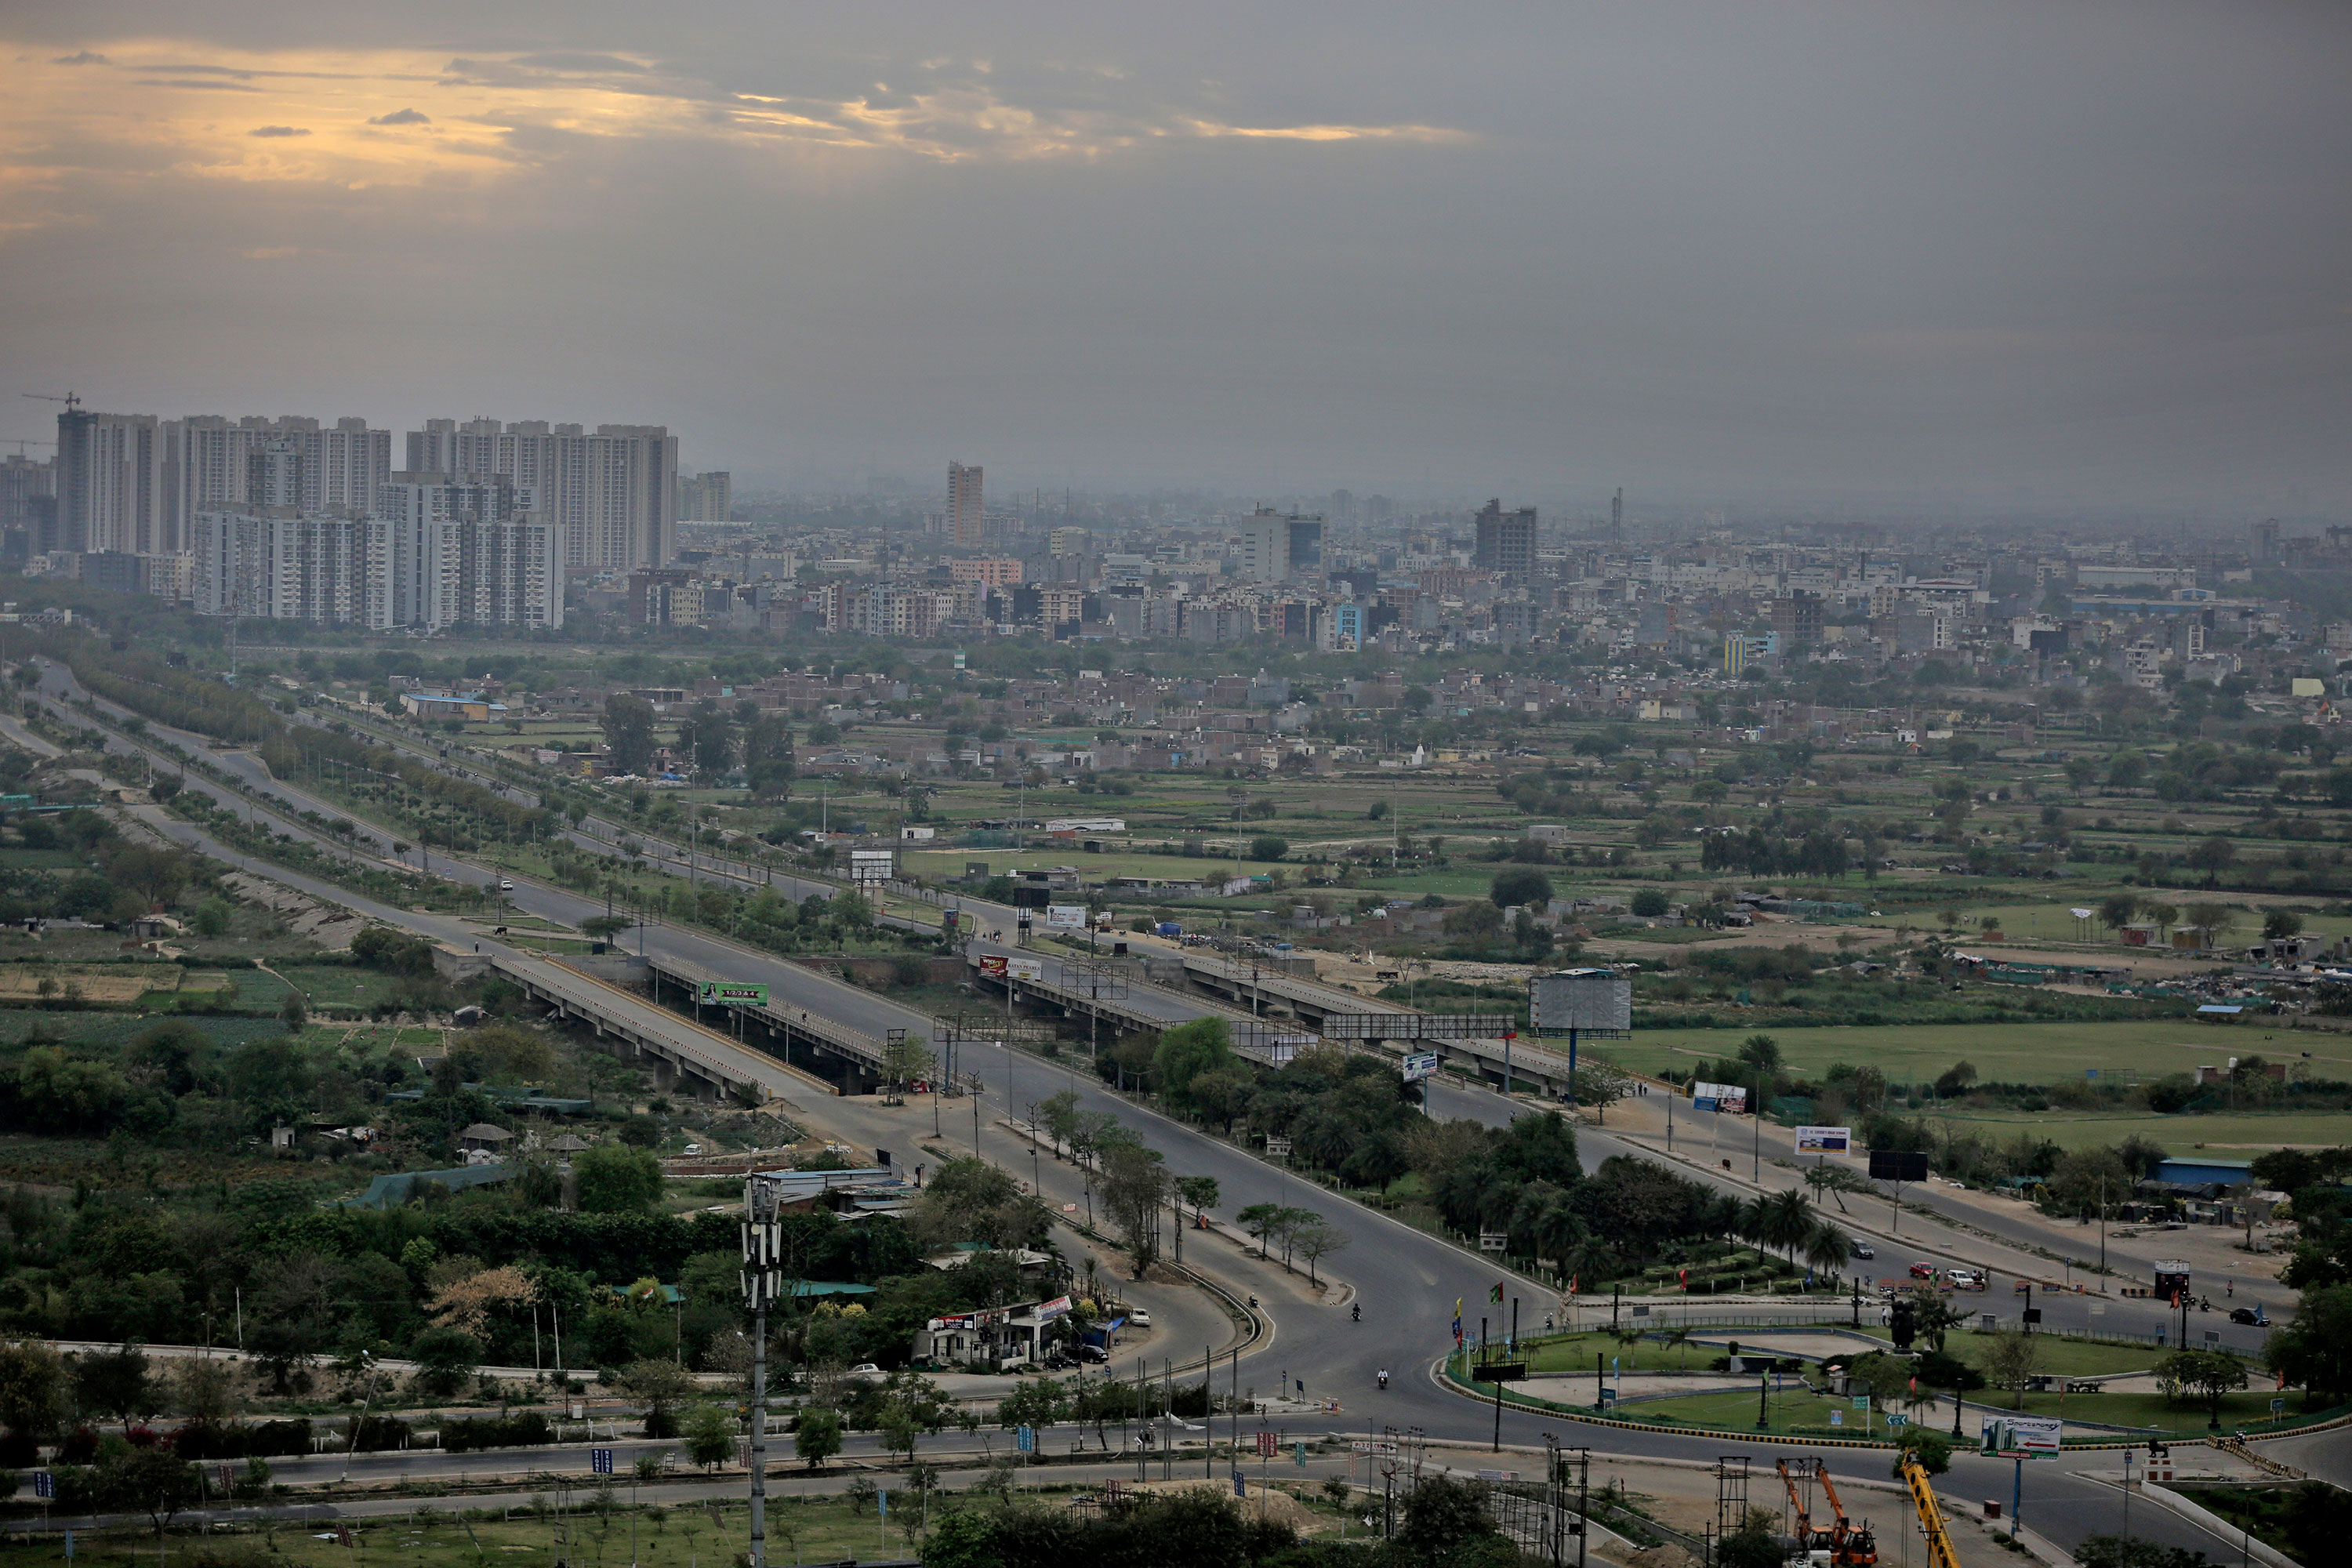 Roads are seen deserted during a lockdown in Greater Noida, a suburb of New Delhi, India, on March 26.